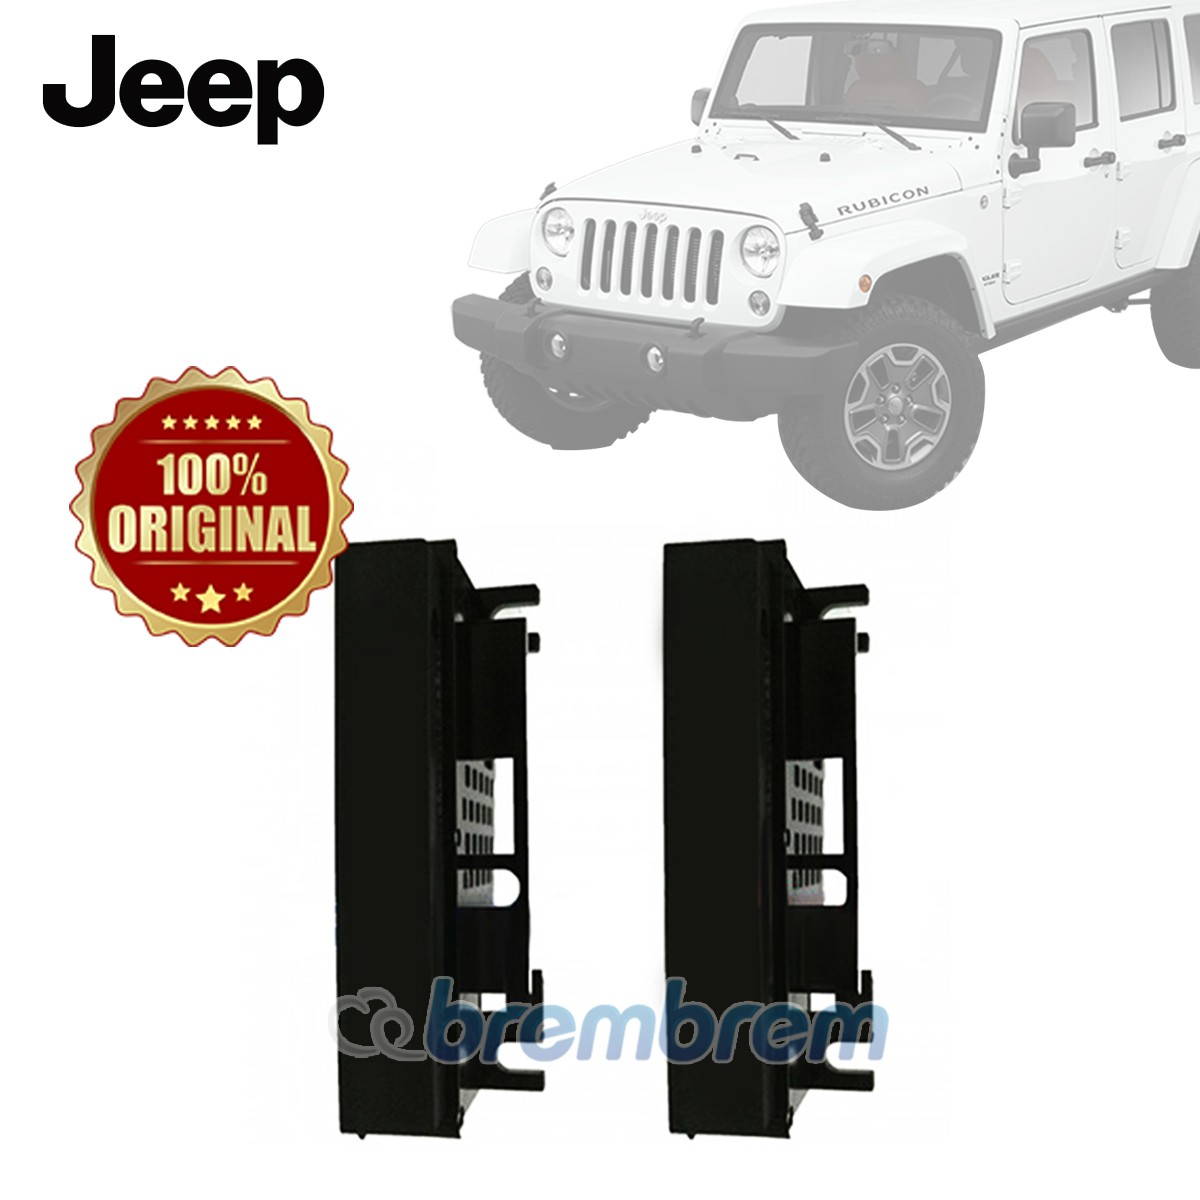 FRAME HEAD UNIT JEEP WRANGLER 2010-2014 (PREORDER)